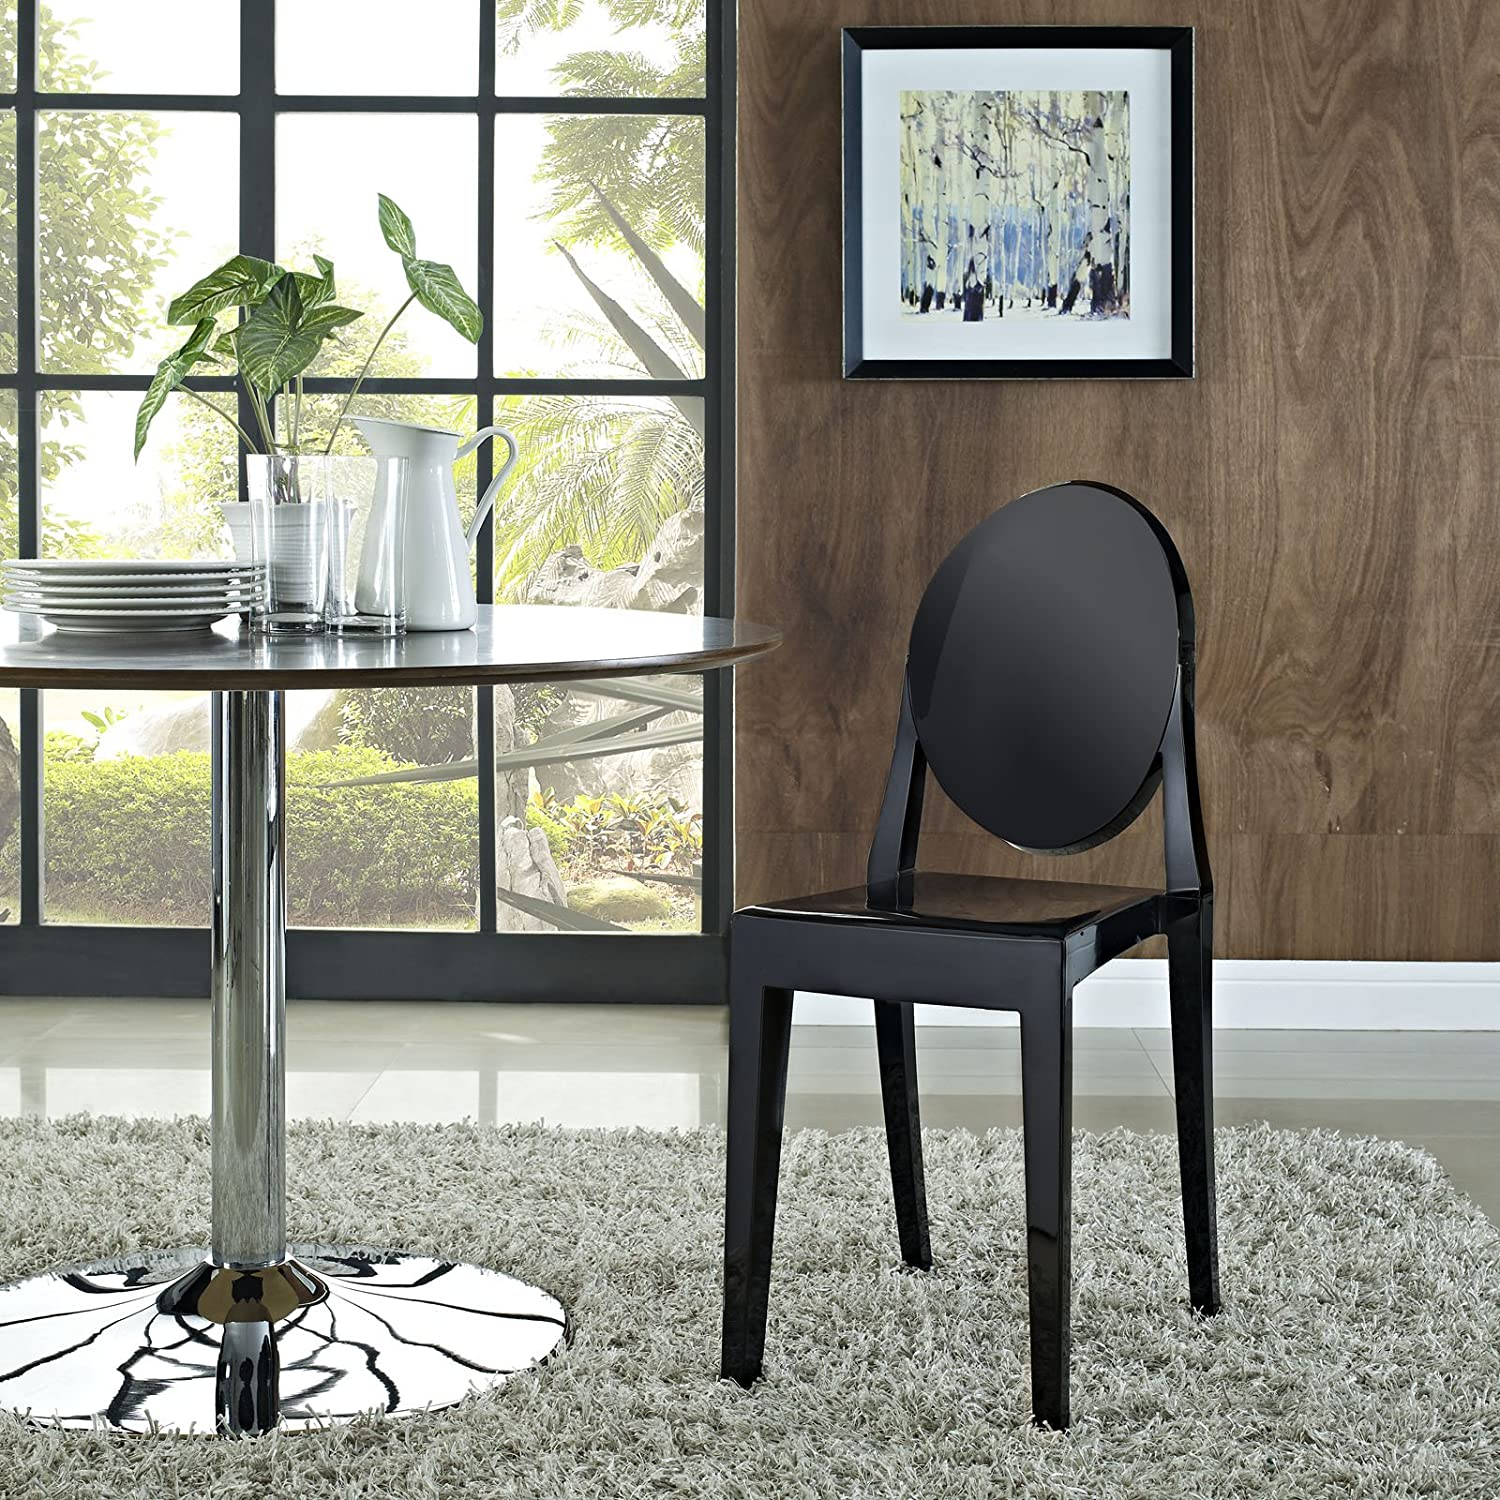 Modway Casper Modern Acrylic Stacking Kitchen and Dining Room Chair in Black - Fully Assembled